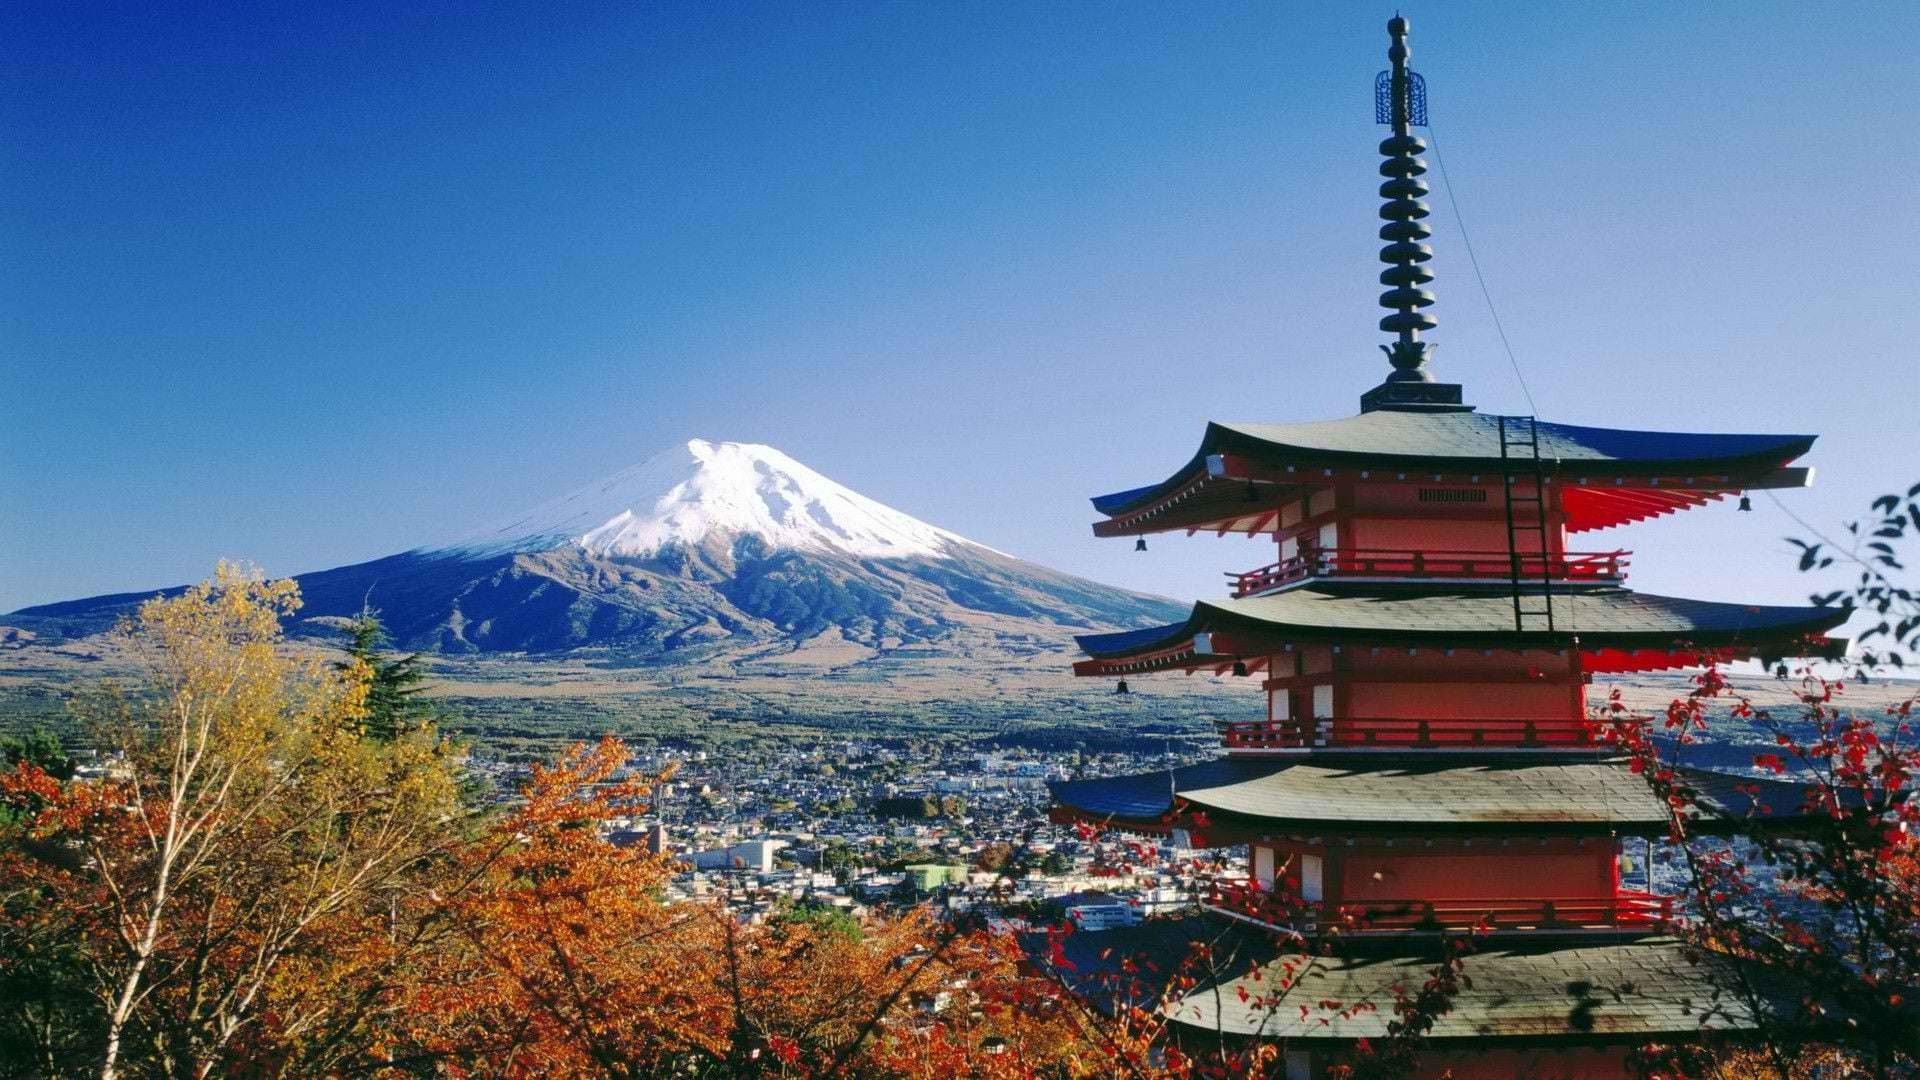 36 Mount Fuji Wallpapers Hd   Mount Fuji Hd Wallpapers 1920x1080